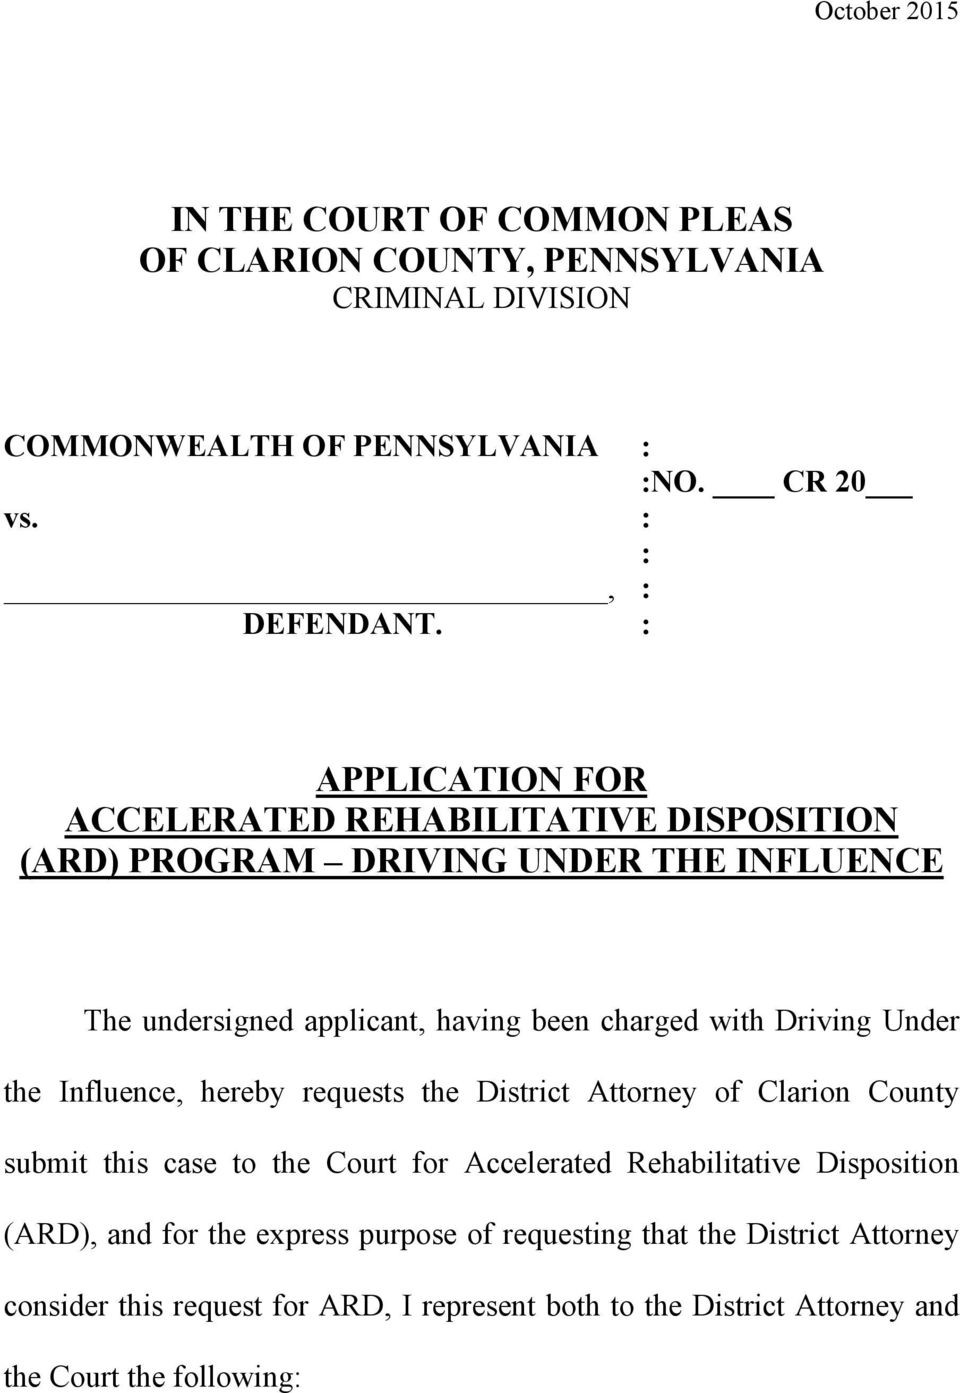 Driving Under the Influence, hereby requests the District Attorney of Clarion County submit this case to the Court for Accelerated Rehabilitative Disposition